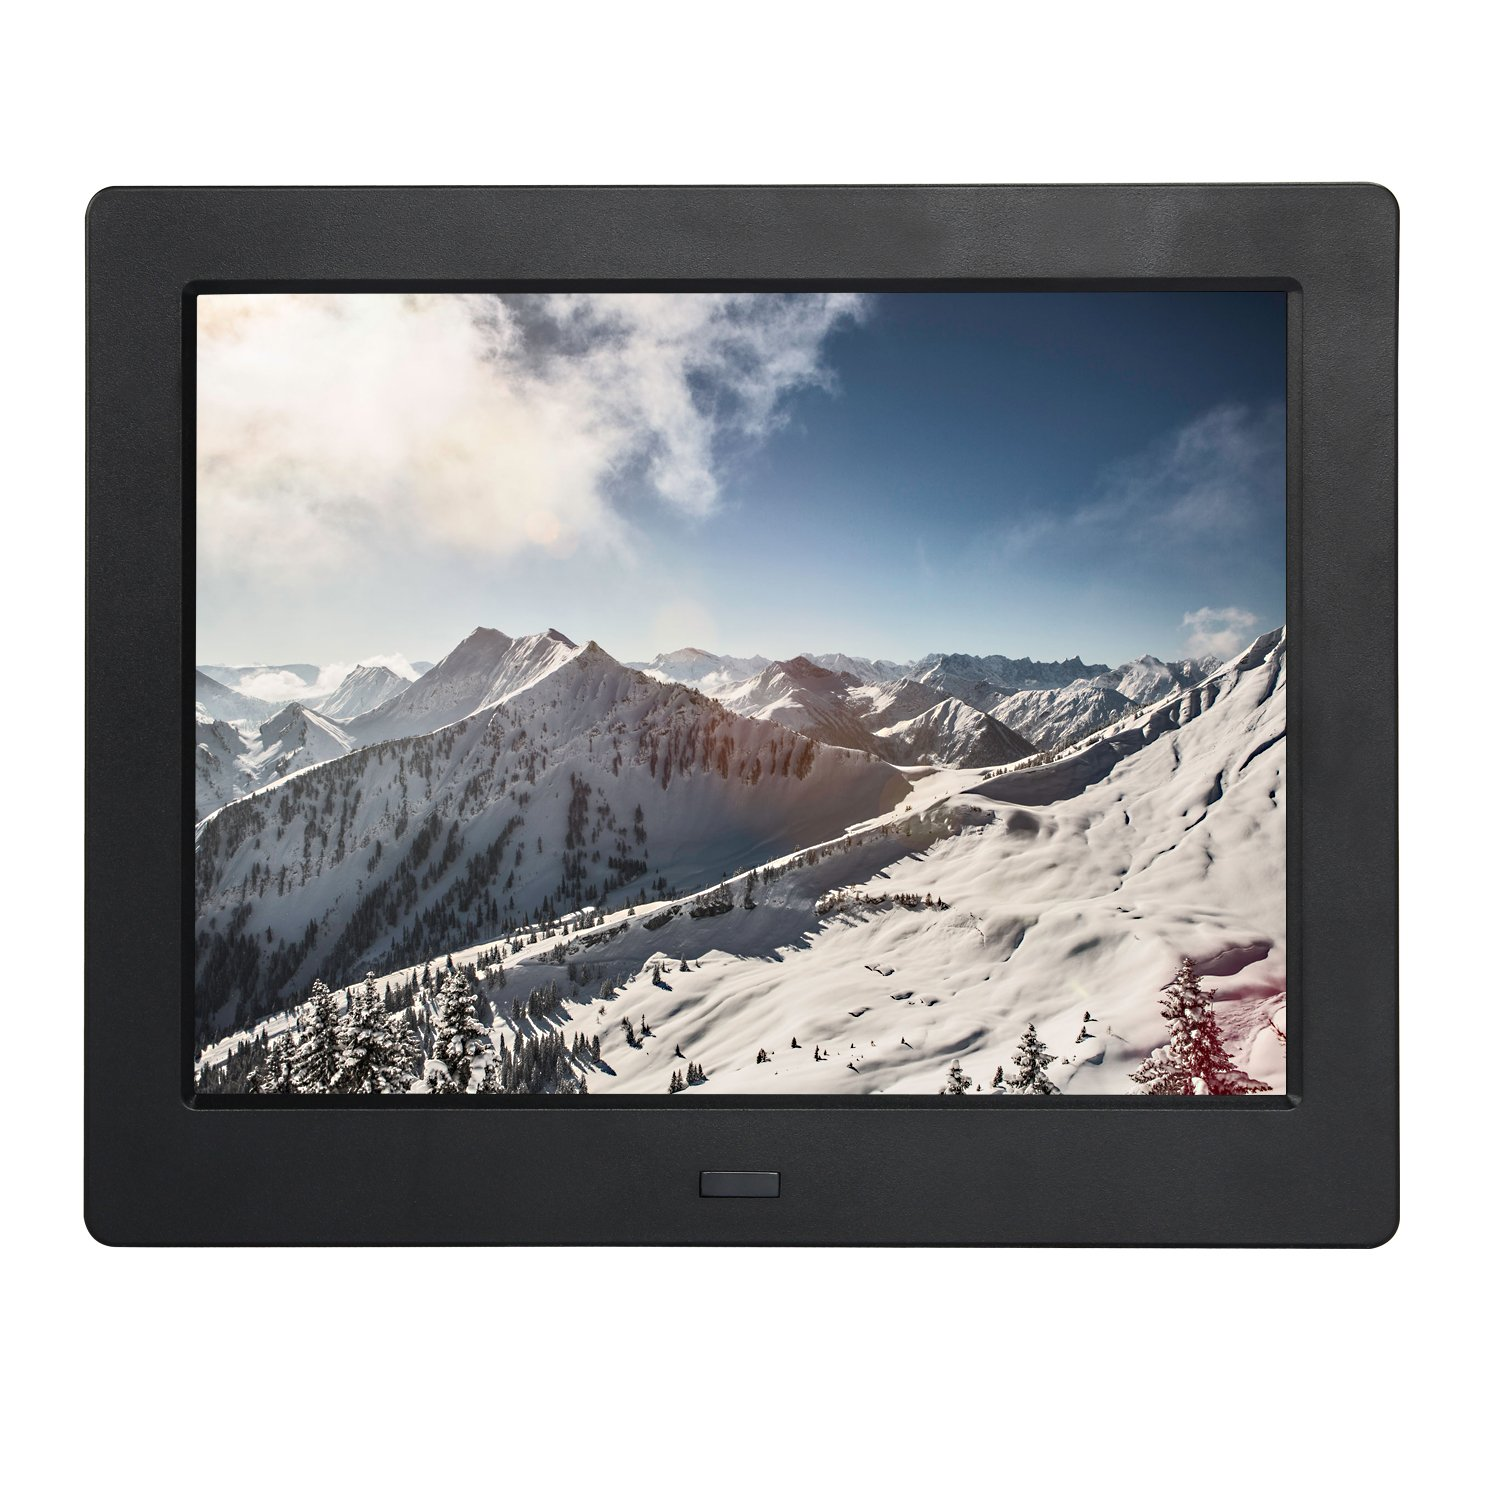 Digital Picture Photo Frame 8 Inch IPS Widescreen Electronic Picture Frame High Definition(1080P) with LCD Display 1024x768,No USB/SD Included,with Wireless Remote Control(Black) by Acecharming (Image #1)